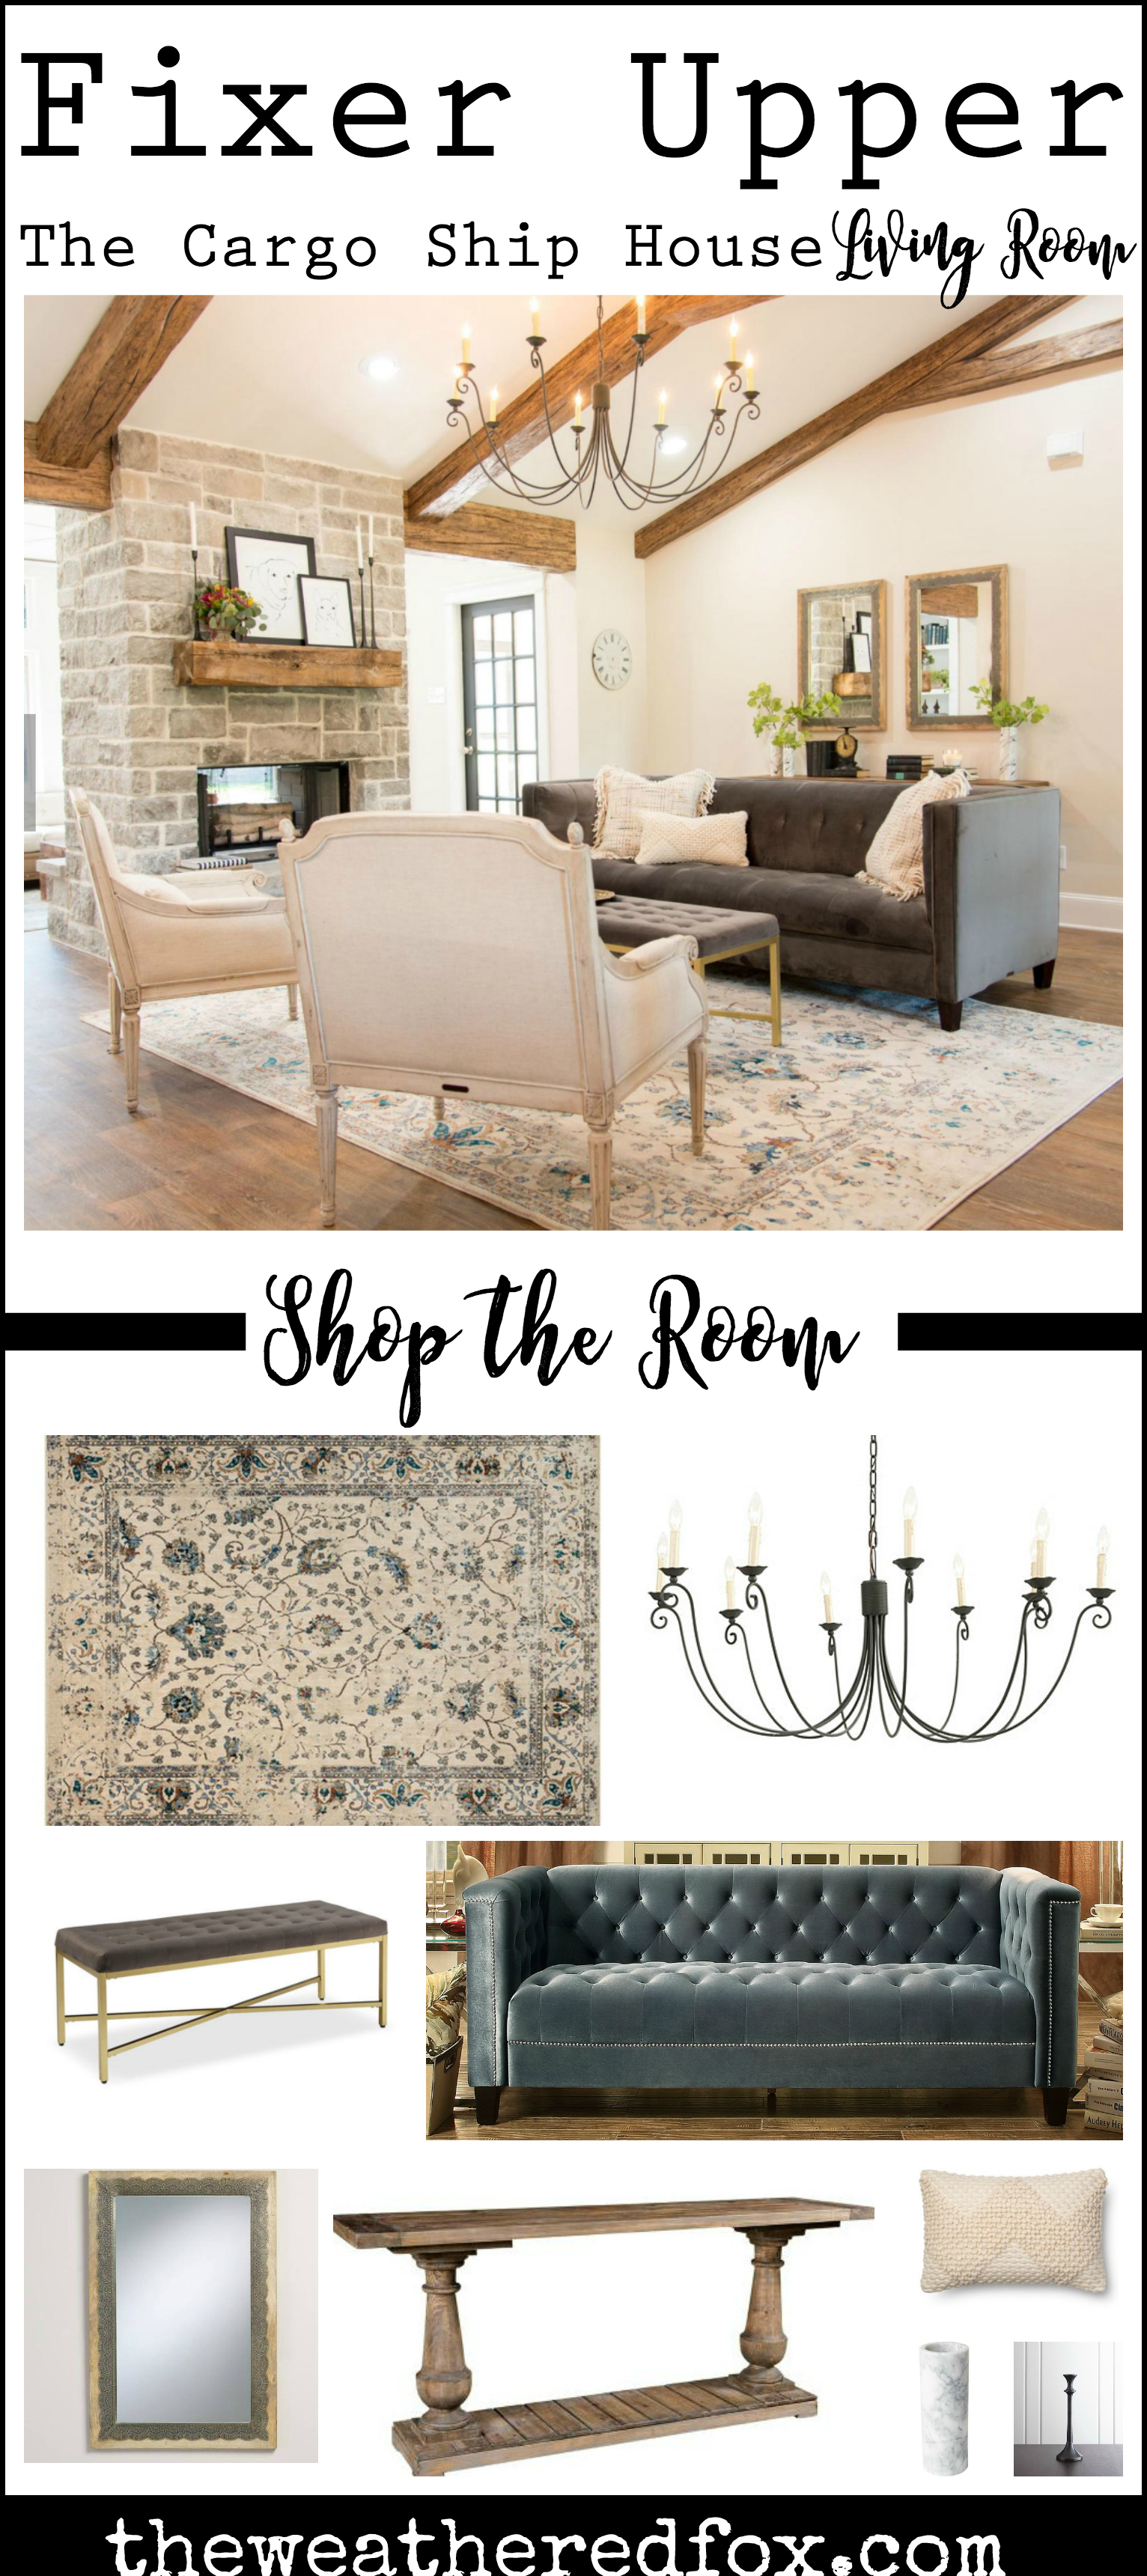 Fixer Upper Cargo Ship House Living Room Shop the Room. Buy products you see on Fixer Upper Season 4